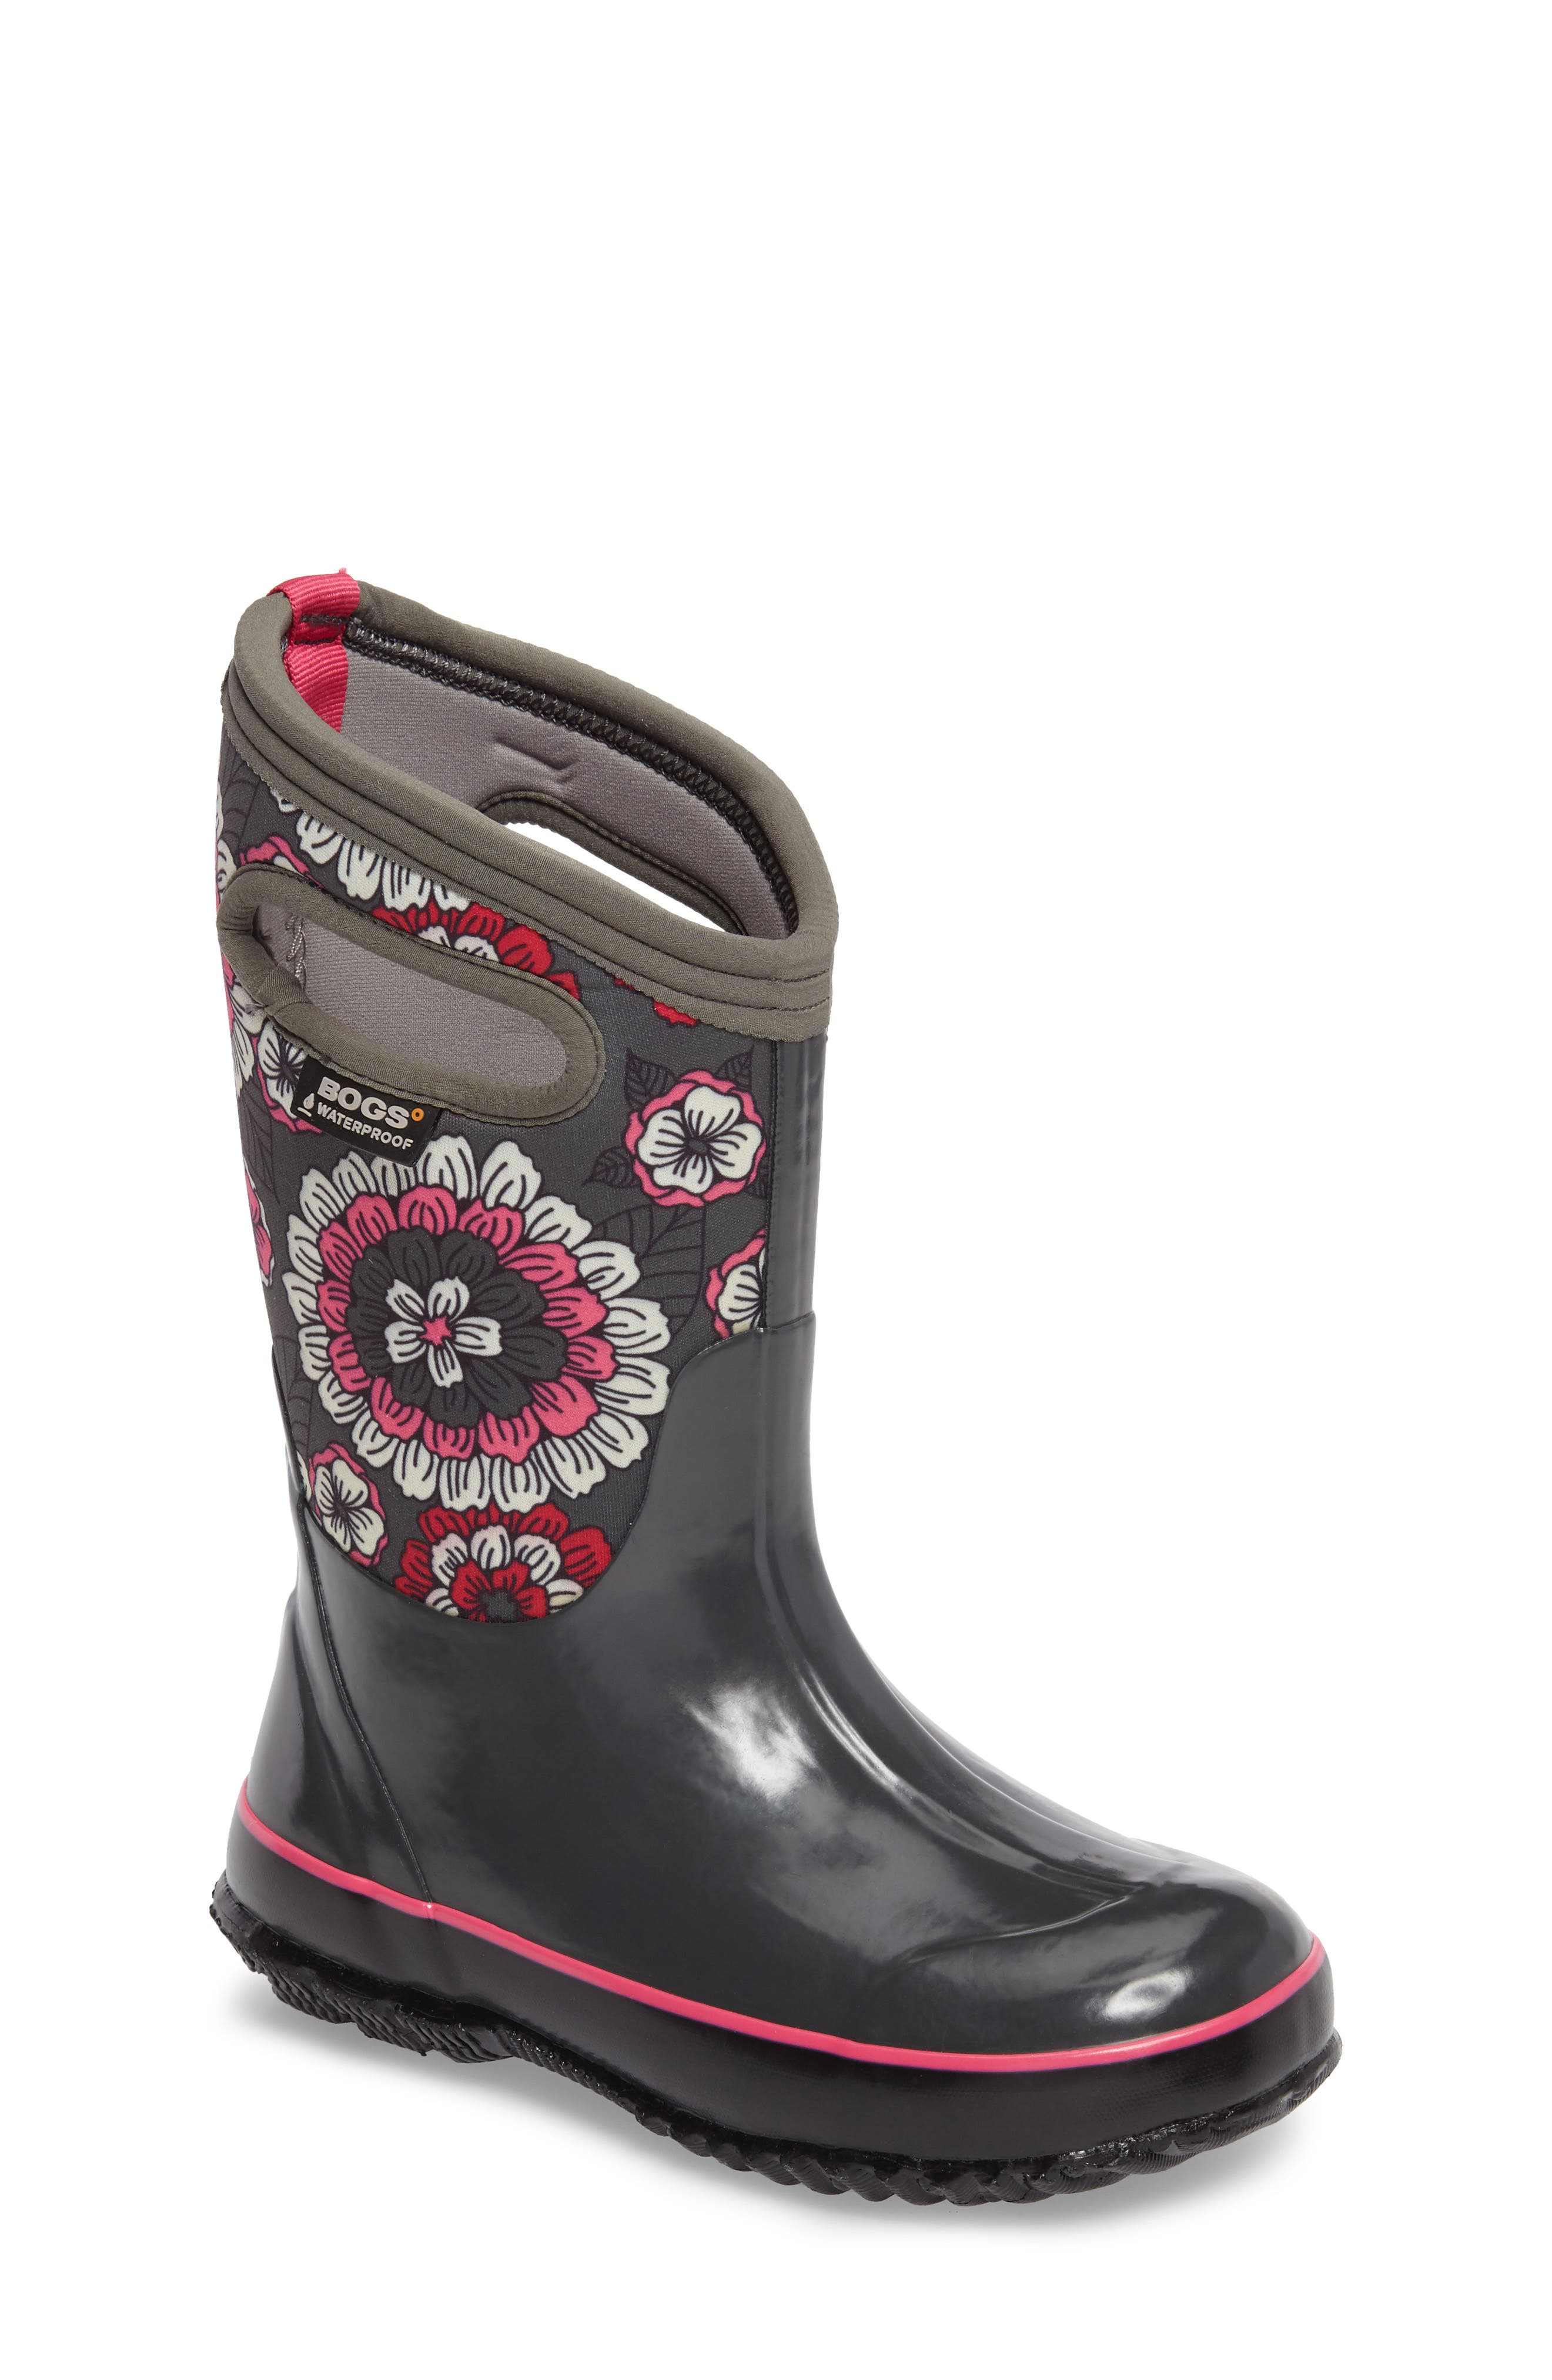 BOGS, Classic Pansies Insulated Waterproof Boot, Main thumbnail 1, color, DARK GRAY MULTI